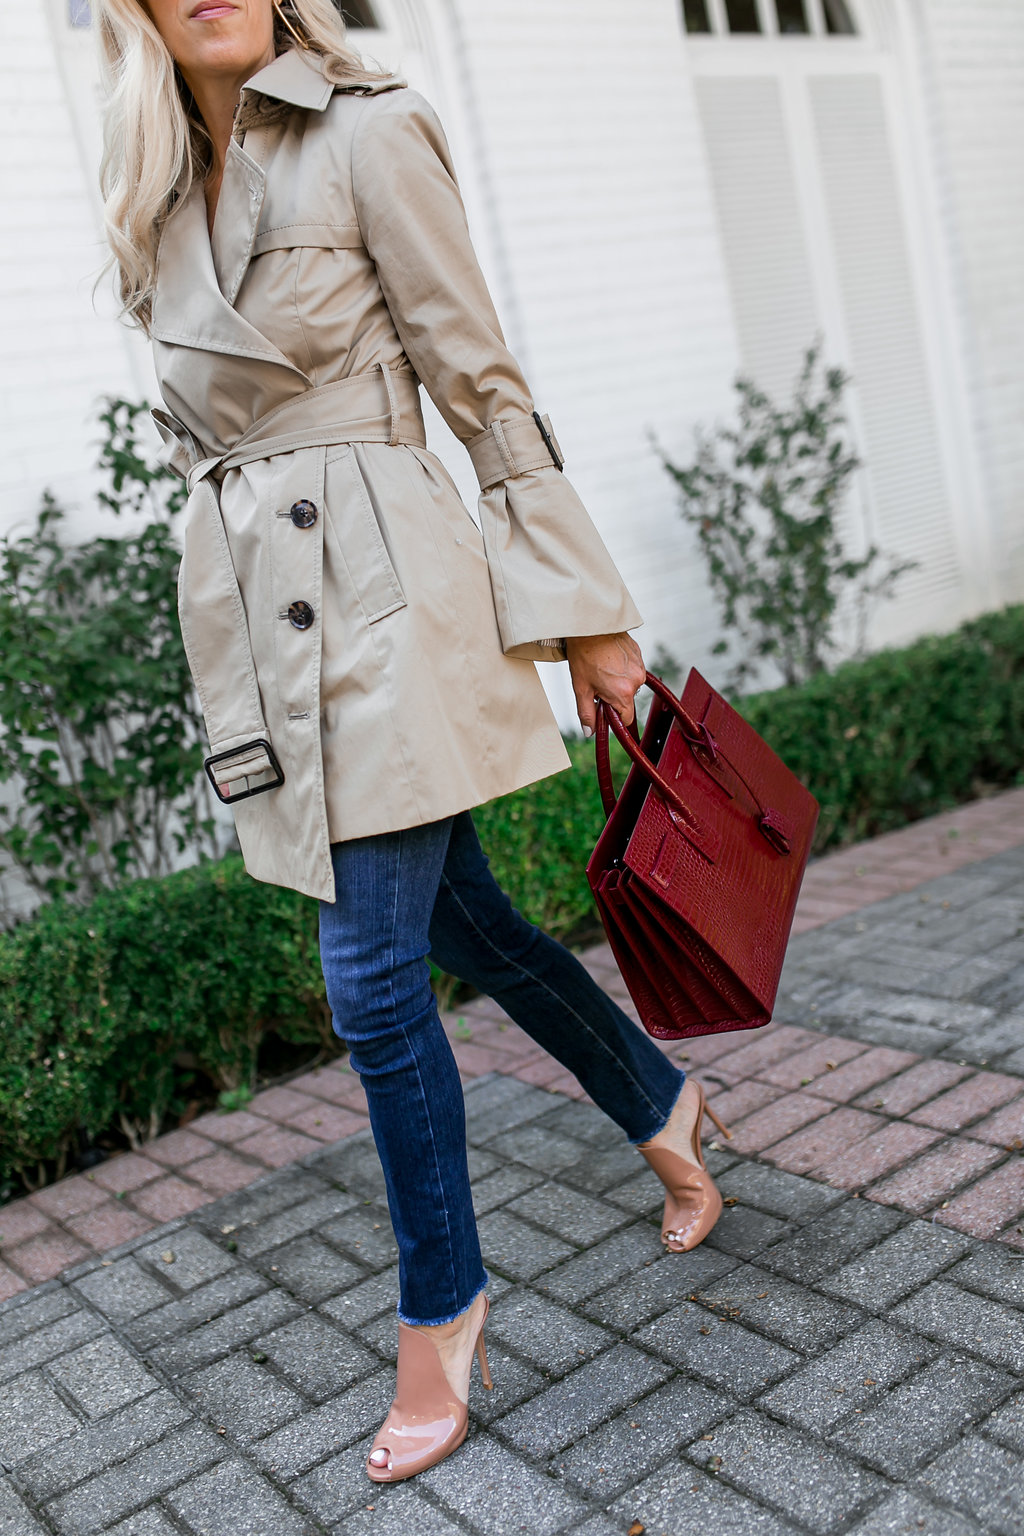 Alicia Wood, Dallas Lifestyle Blogger, Dallas Fashion Blogger, Best After Christmas Sales, Olivia Palermo Trench, Saint Laurent Sac De Jour, Gianvito Rossi Mules